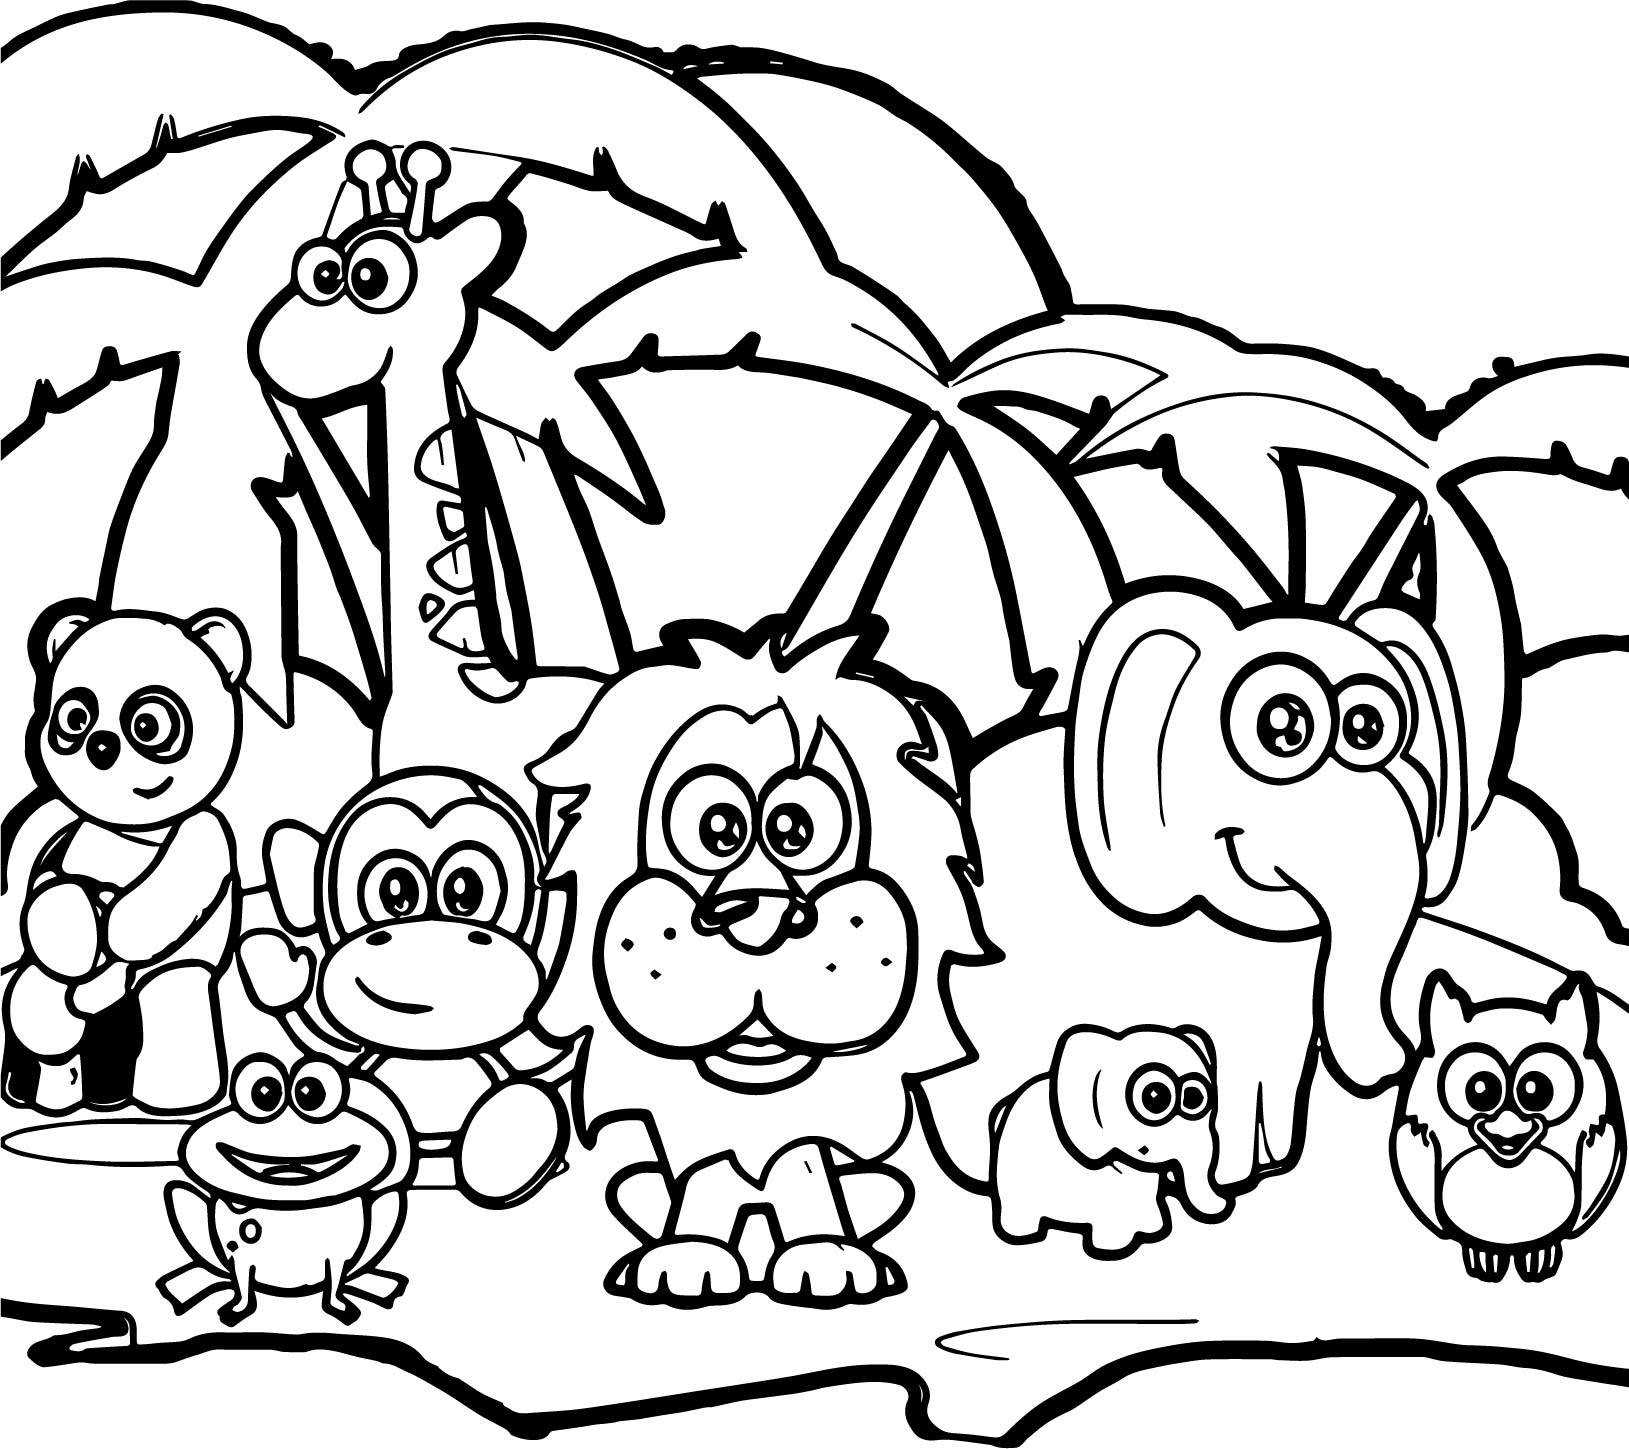 Forest Animals Coloring Pages Abc Forest Animal Coloring Page Wecoloringpage Birijus Com